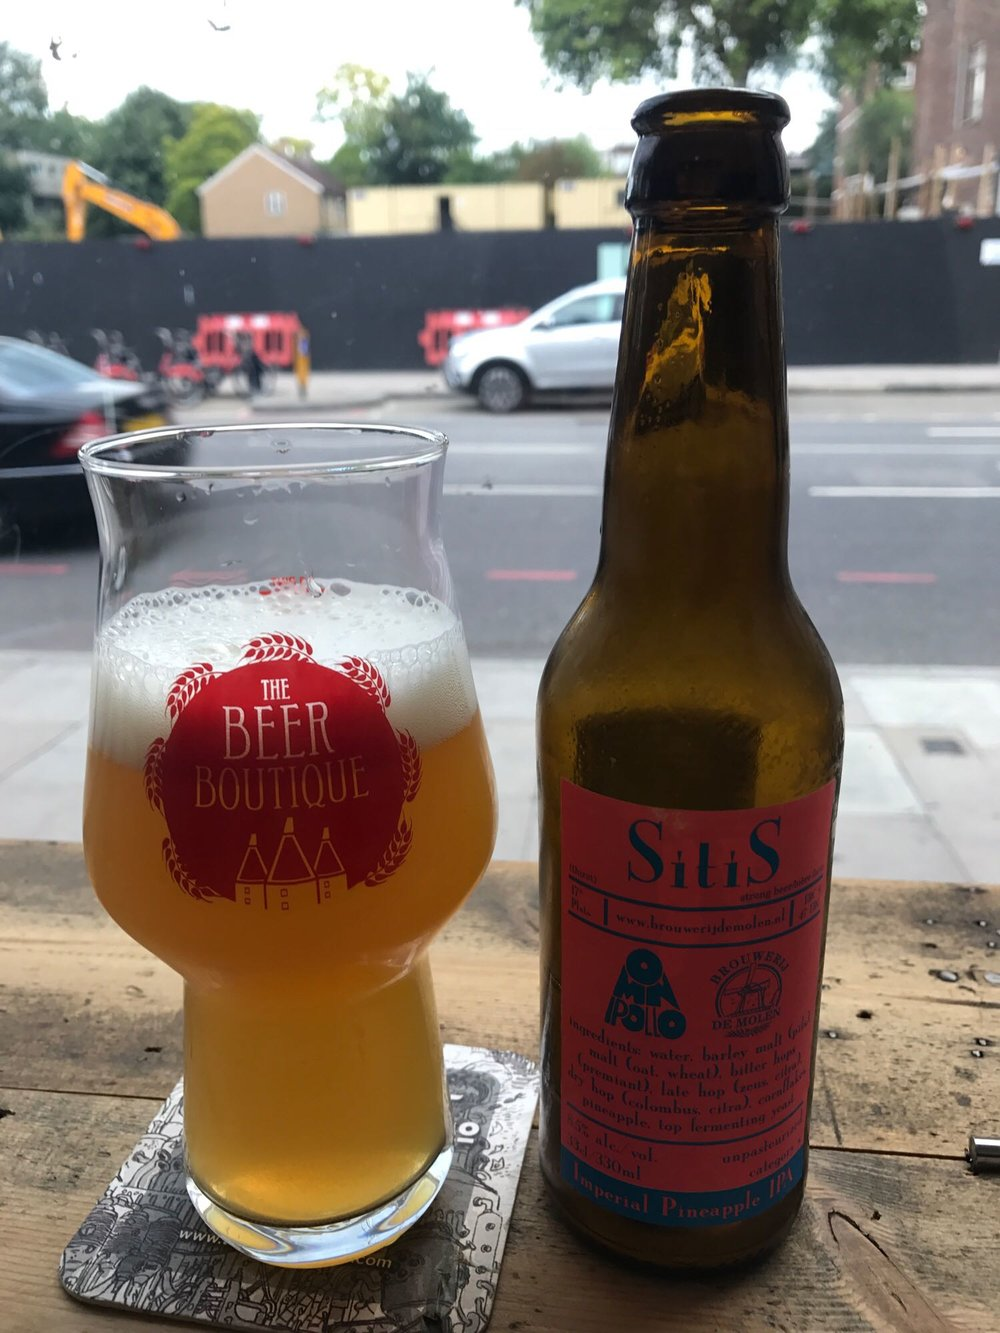 "SitiS - Imperial Double IPA 8.5% // Brouwerij De Molen x Omnipollo - ""Hey, Hedges, we heard you like pineapple?"" ""Yes"" ""What about when it's in beer?"" ""Double yes"" ""What about in a Double IPA?"" ""Triple yes"" ""What about when it's also a collaboration between two great European breweries?""""Why are you still talking?""I spied this in the fridges at The Beer Boutique in Putney and it wasn't long until we became intimately acquainted. This was brewed using cornflakes and whilst I can't claim my palette is so advanced that I could taste them at all, I think it's the first time I've seen them listed as an ingredient in a beer. Well, I thought it was interesting...Forget the cornflakes - this was all about the pineapple. A juice bomb that tasted super fresh and went down way, way too easy for 8.5%."